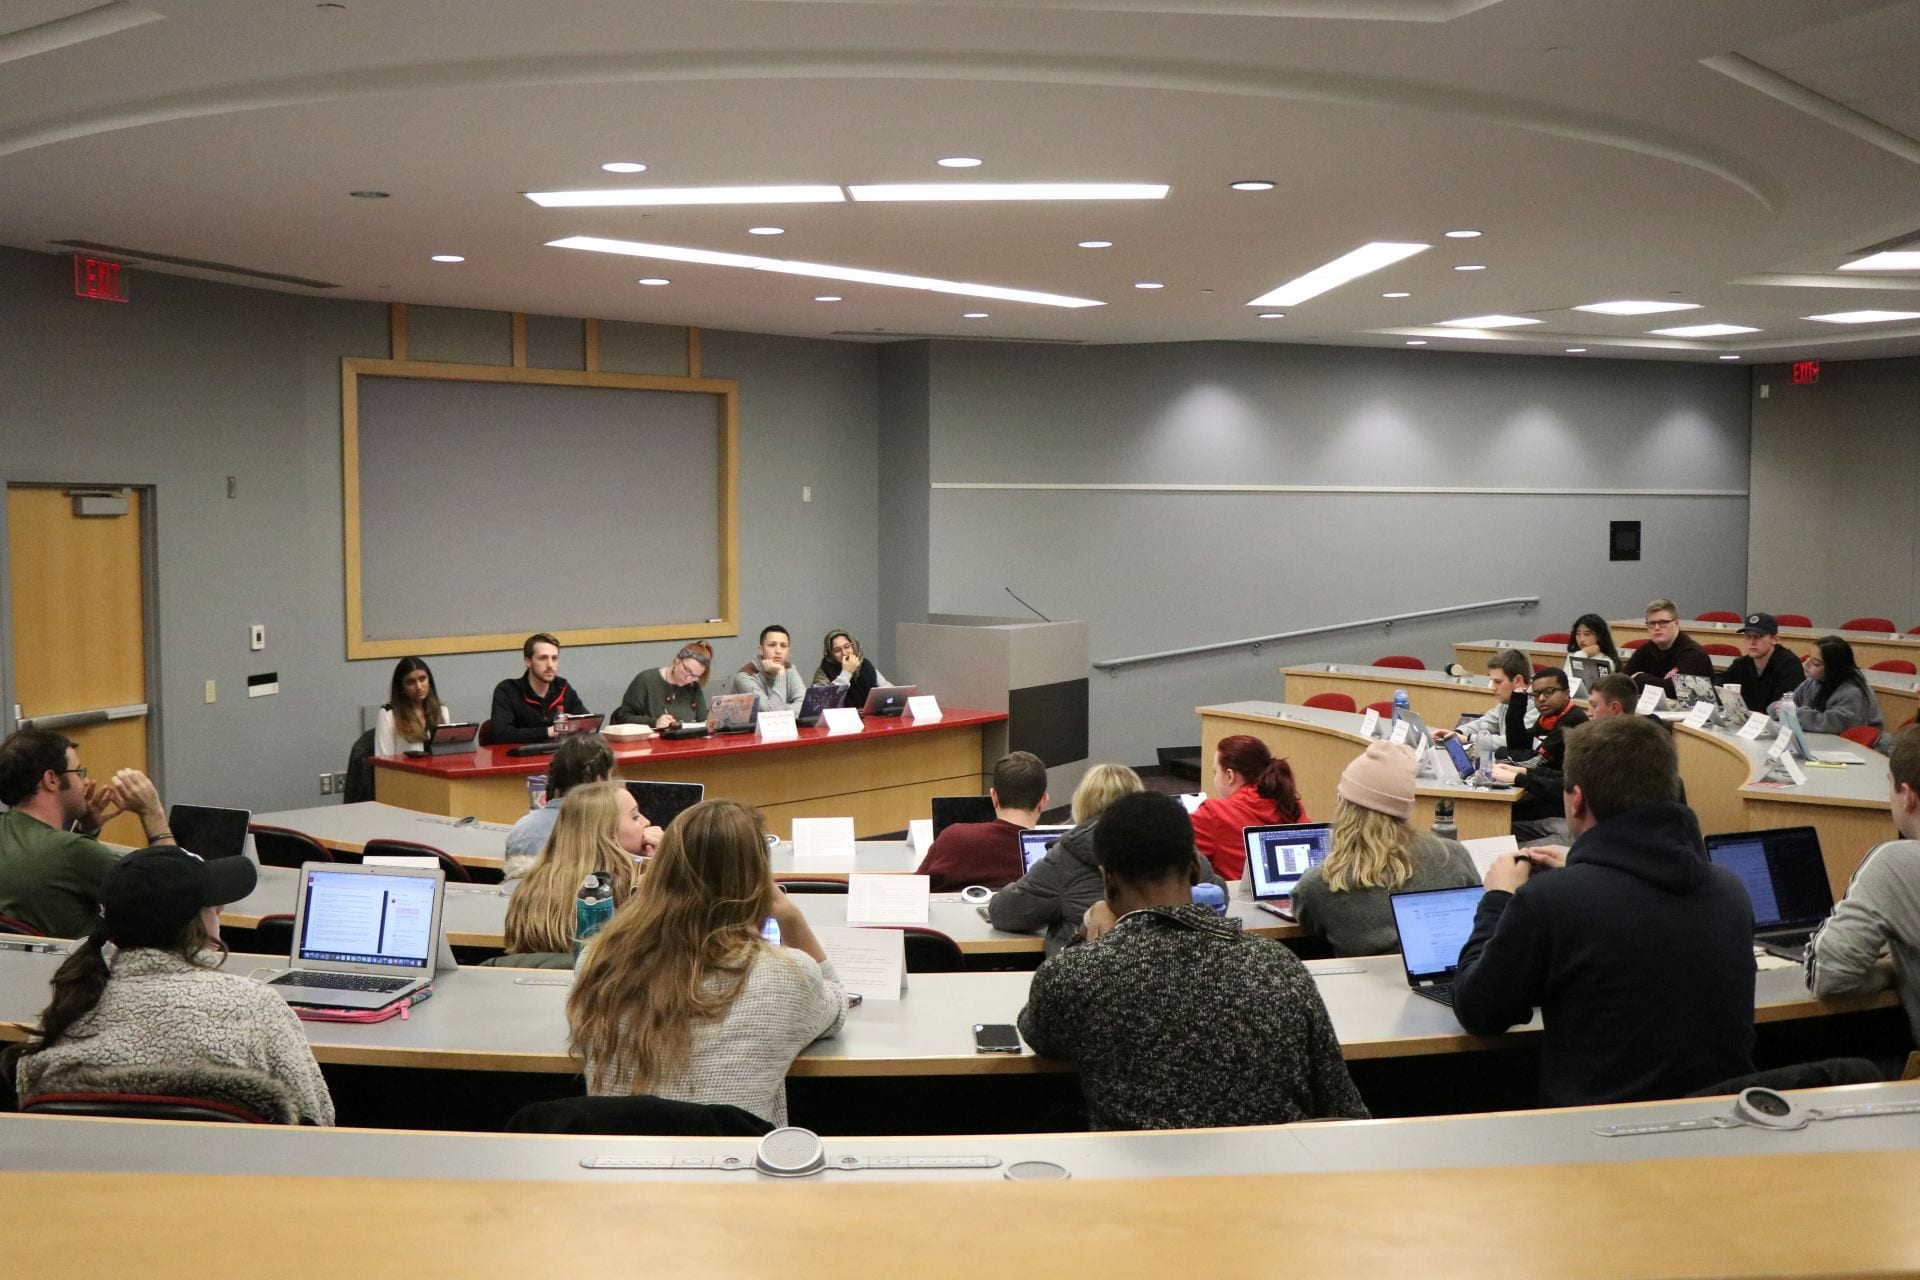 www.thelantern.com: USG: Update sustainability goals, recognize women's history month, acknowledge AAPI hate, rename diversity and inclusion committee